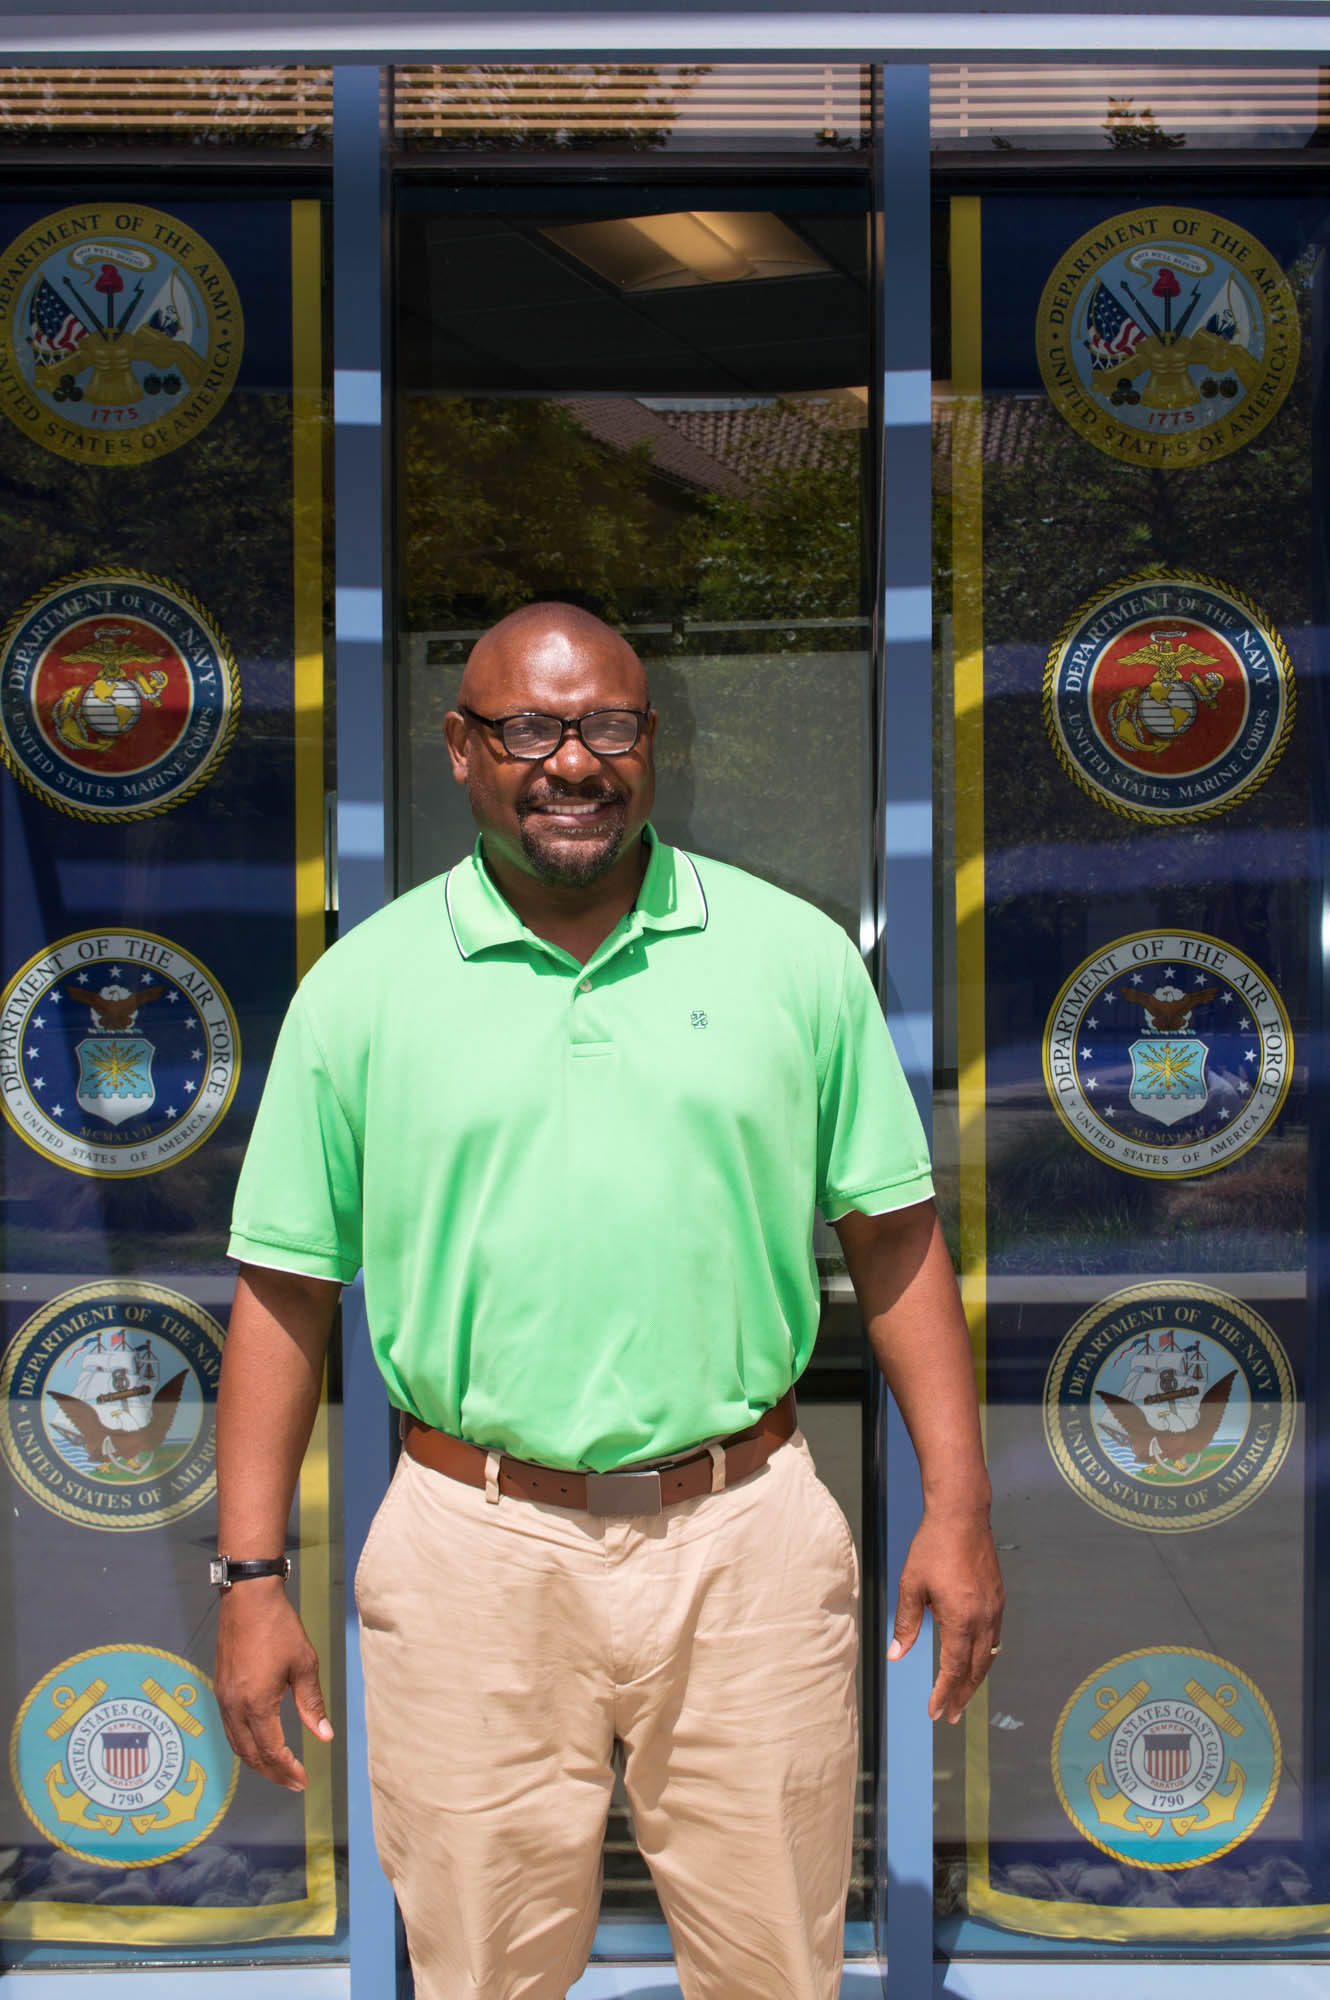 Veterans Resource Center opens on campus